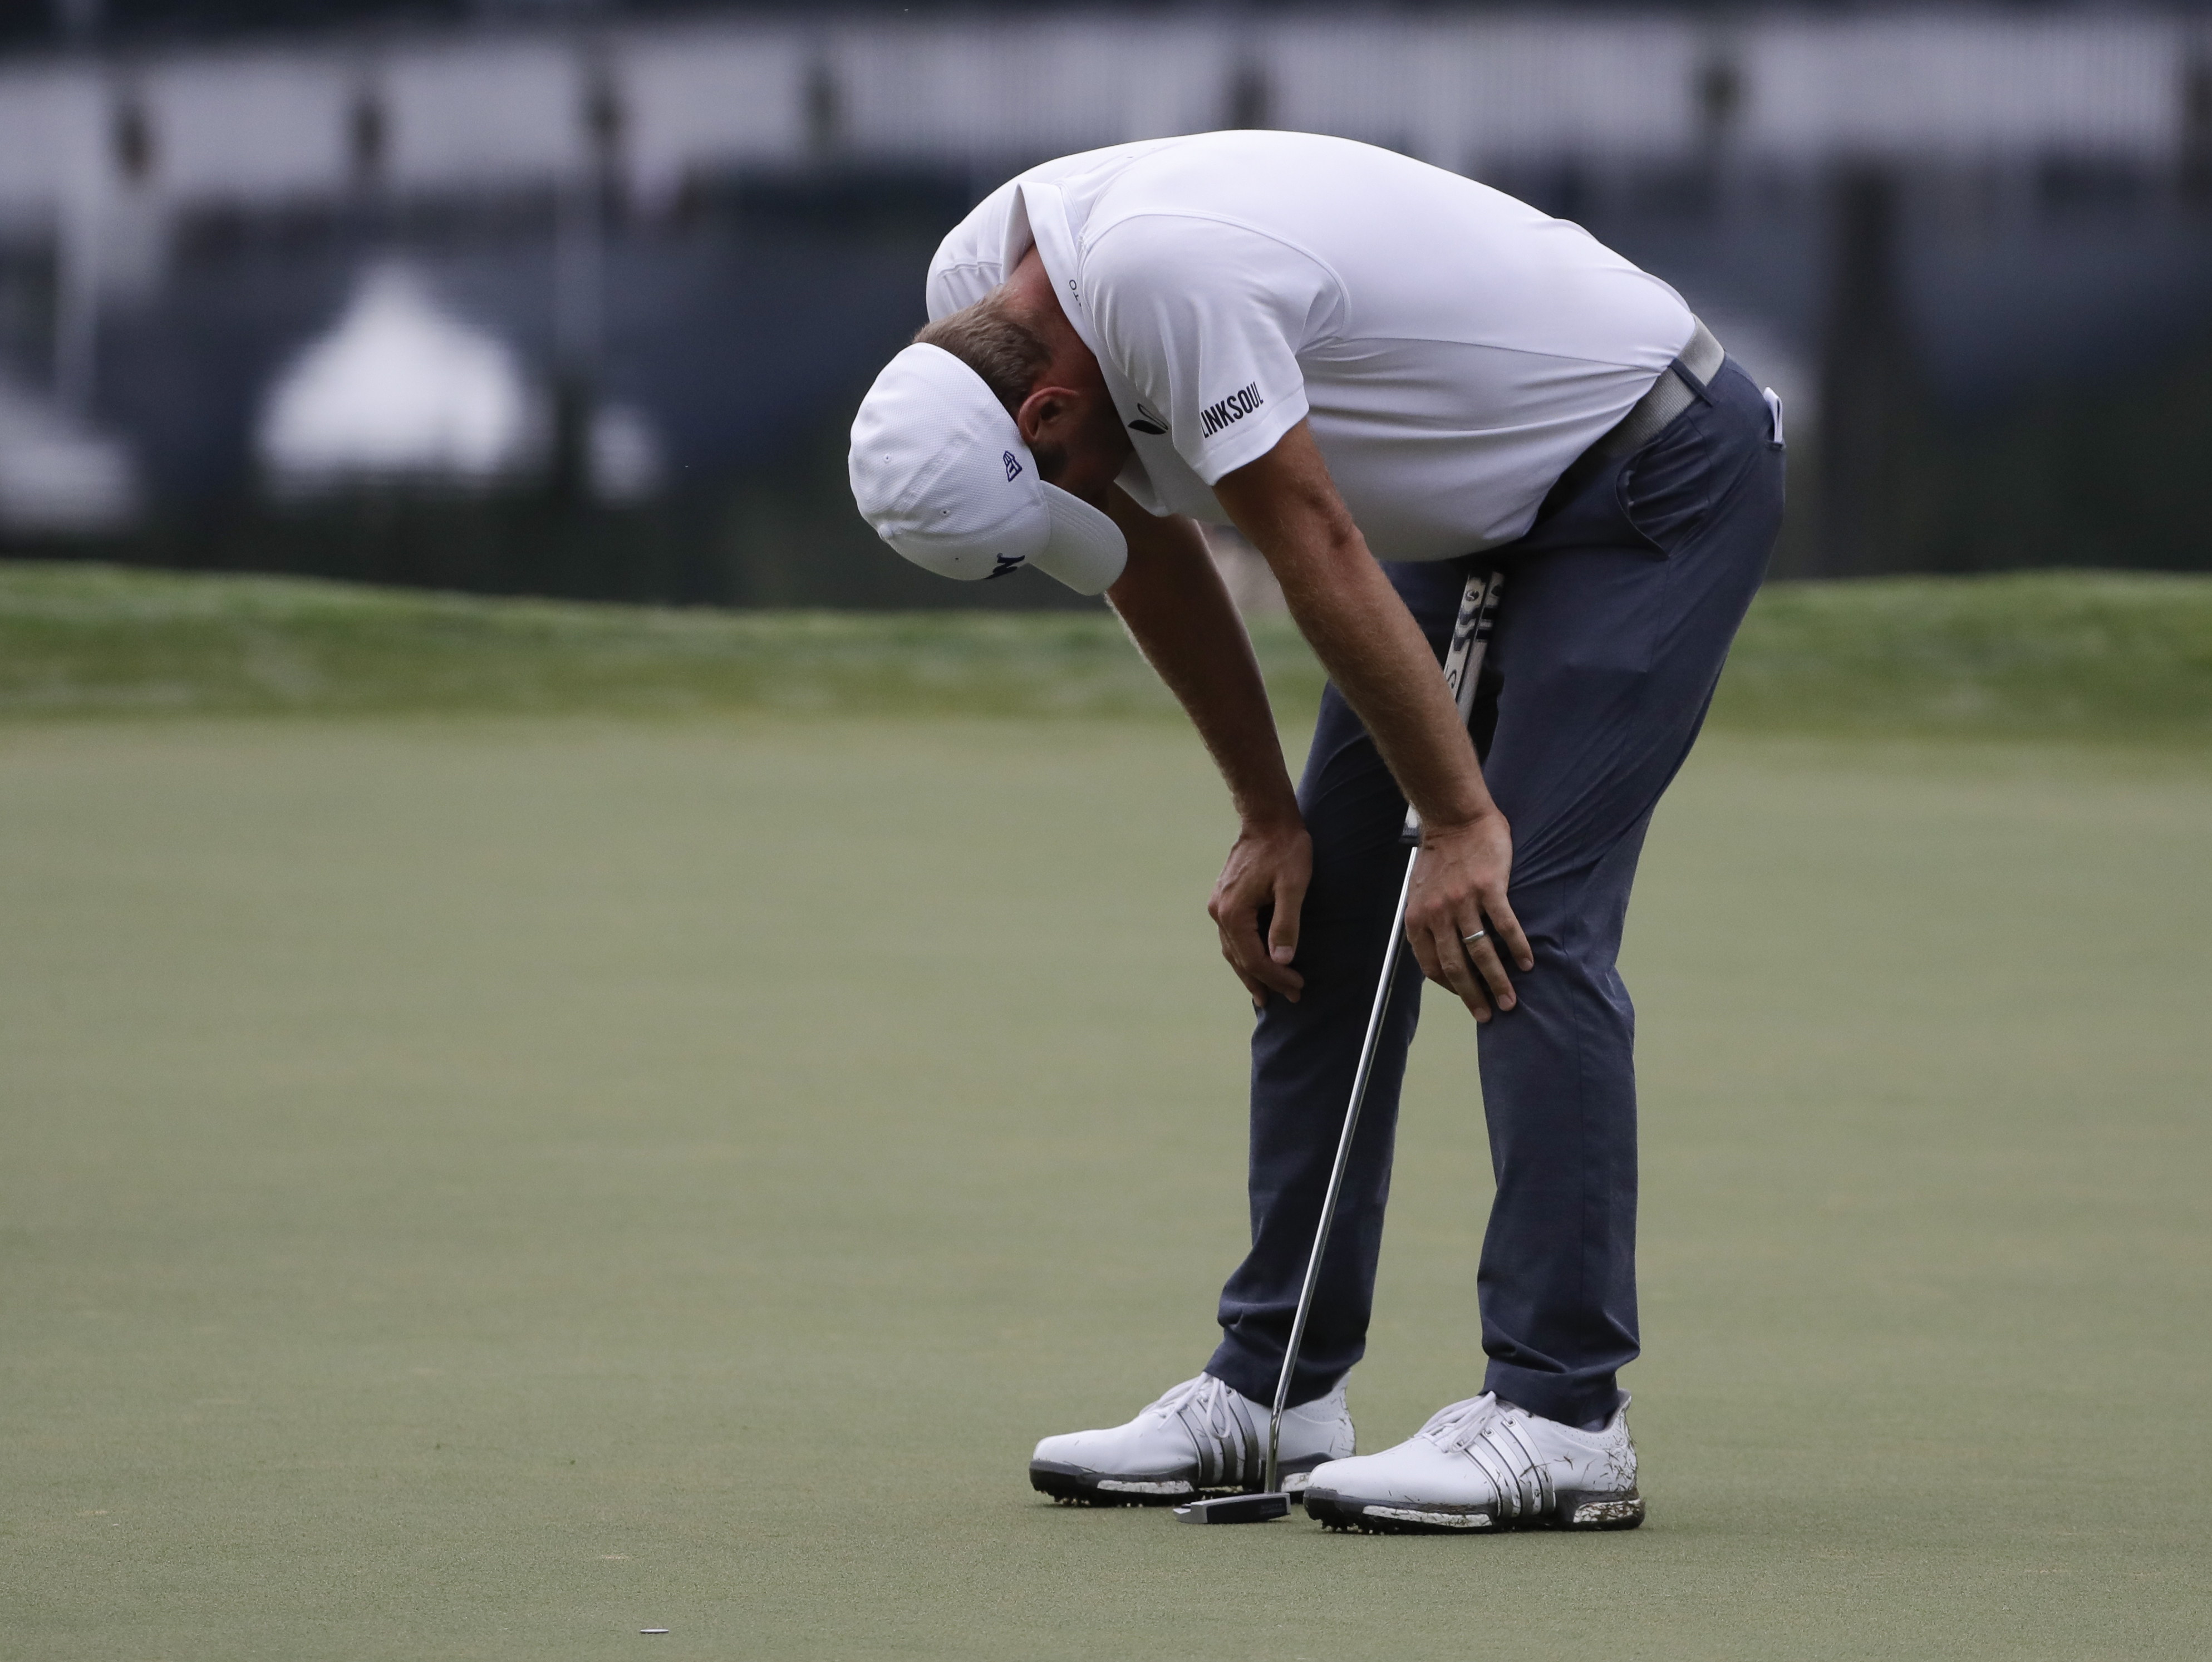 Lucas Glover reacts after missing a putt on the 14th hole during the second round of the PGA Championship golf tournament at the Quail Hollow Club Friday, Aug. 11, 2017, in Charlotte, N.C. (AP Photo/Chris O'Meara)